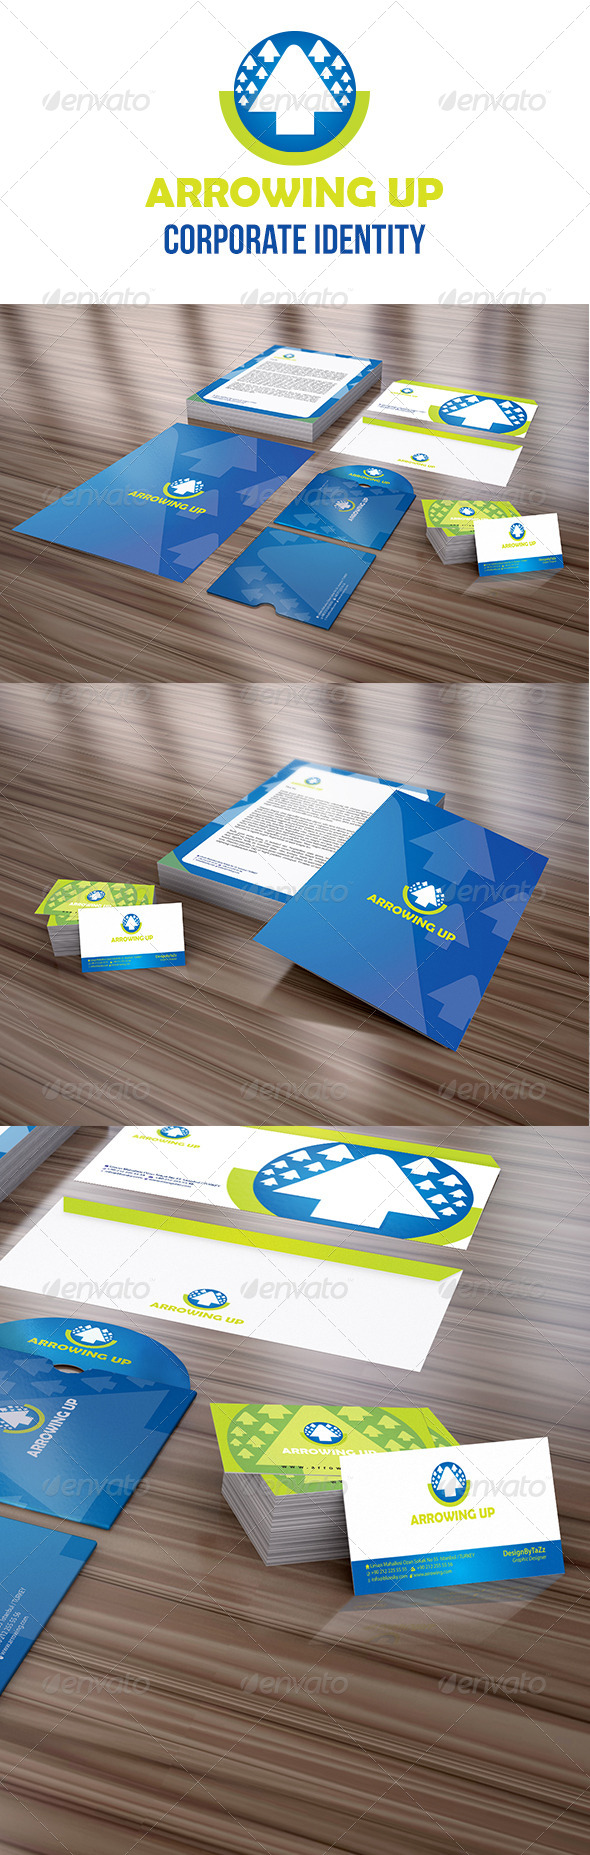 GraphicRiver Arrowing Up Corporate Identity Package 4064951